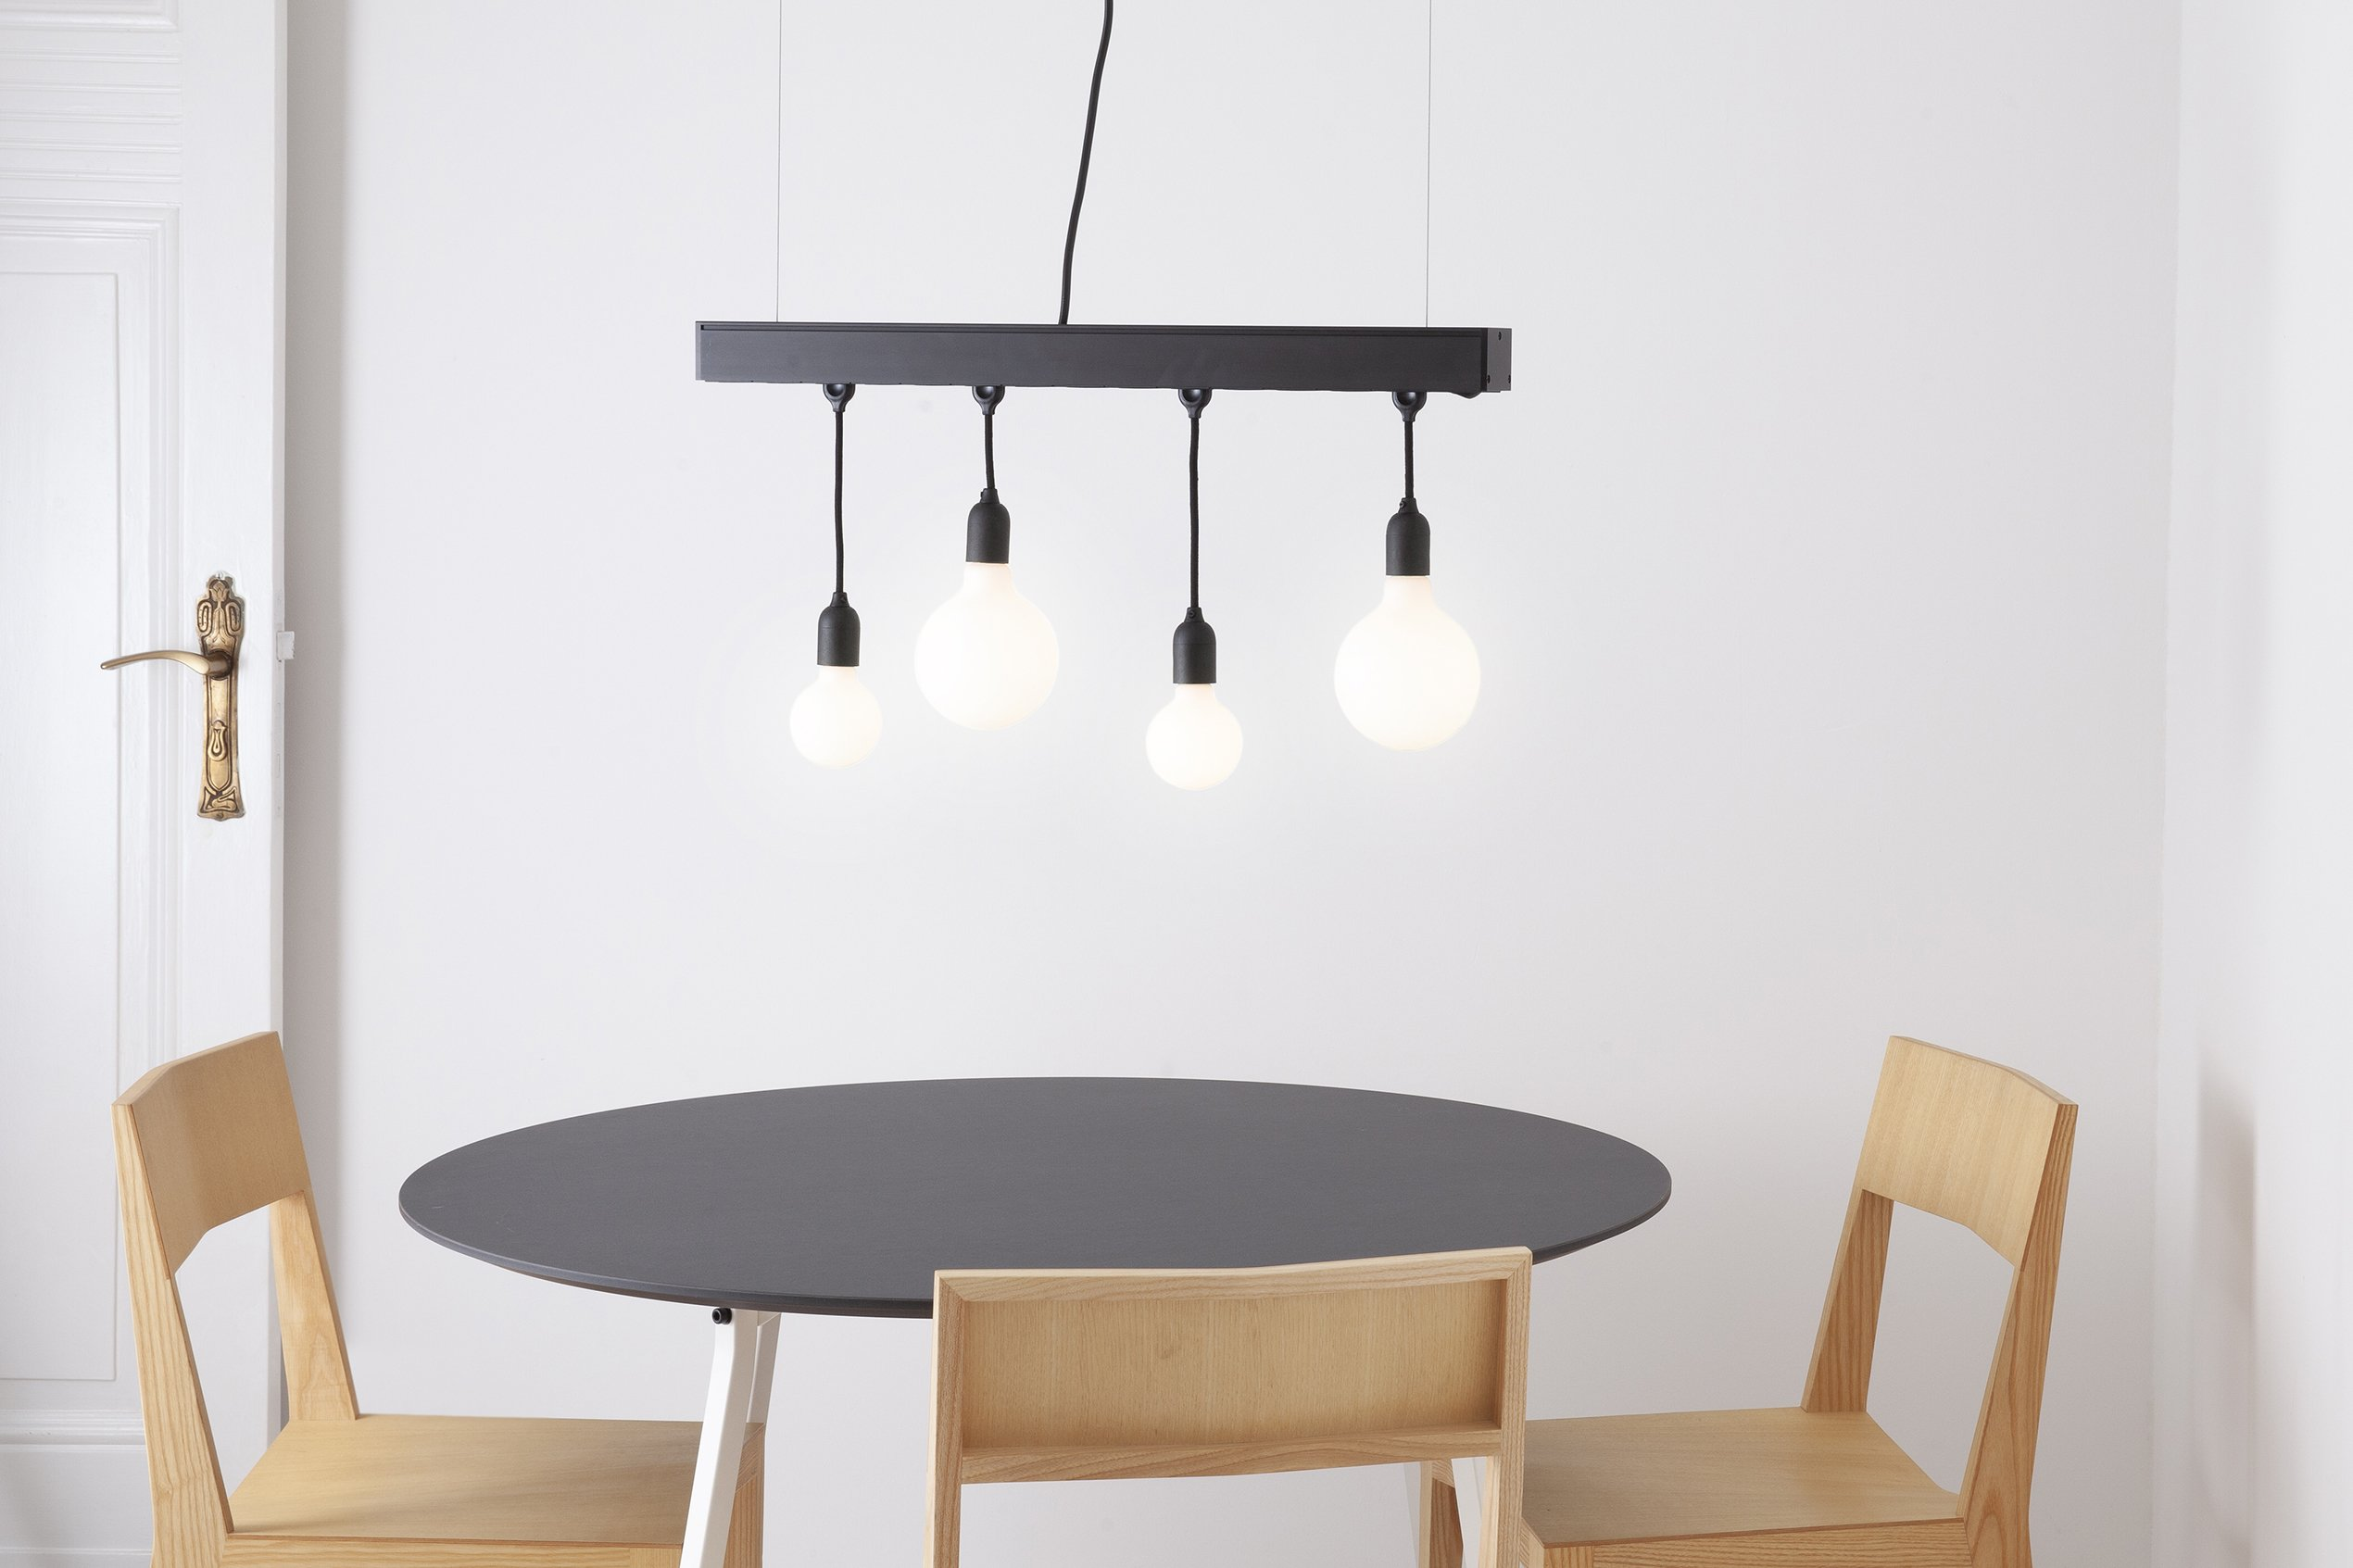 Hang Jack pendant lamp and power bar fitted with LED Porcelain Bulbs (turned on) above an Easy Round Table and Chair 3